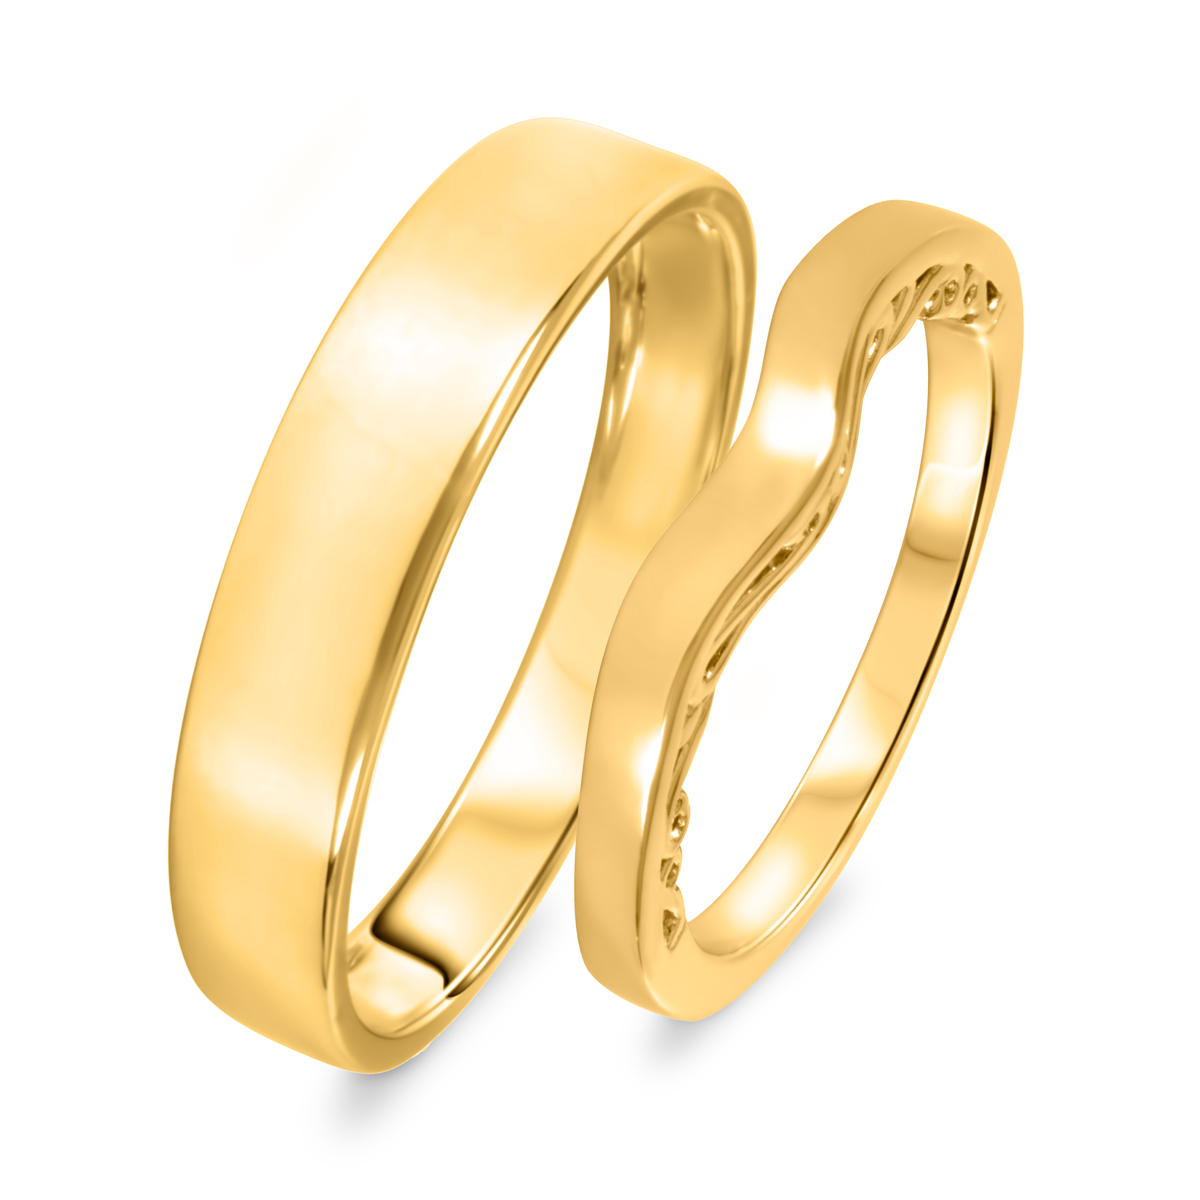 Diamond His And Hers Wedding Band Set 10K Yellow Gold- Size 8